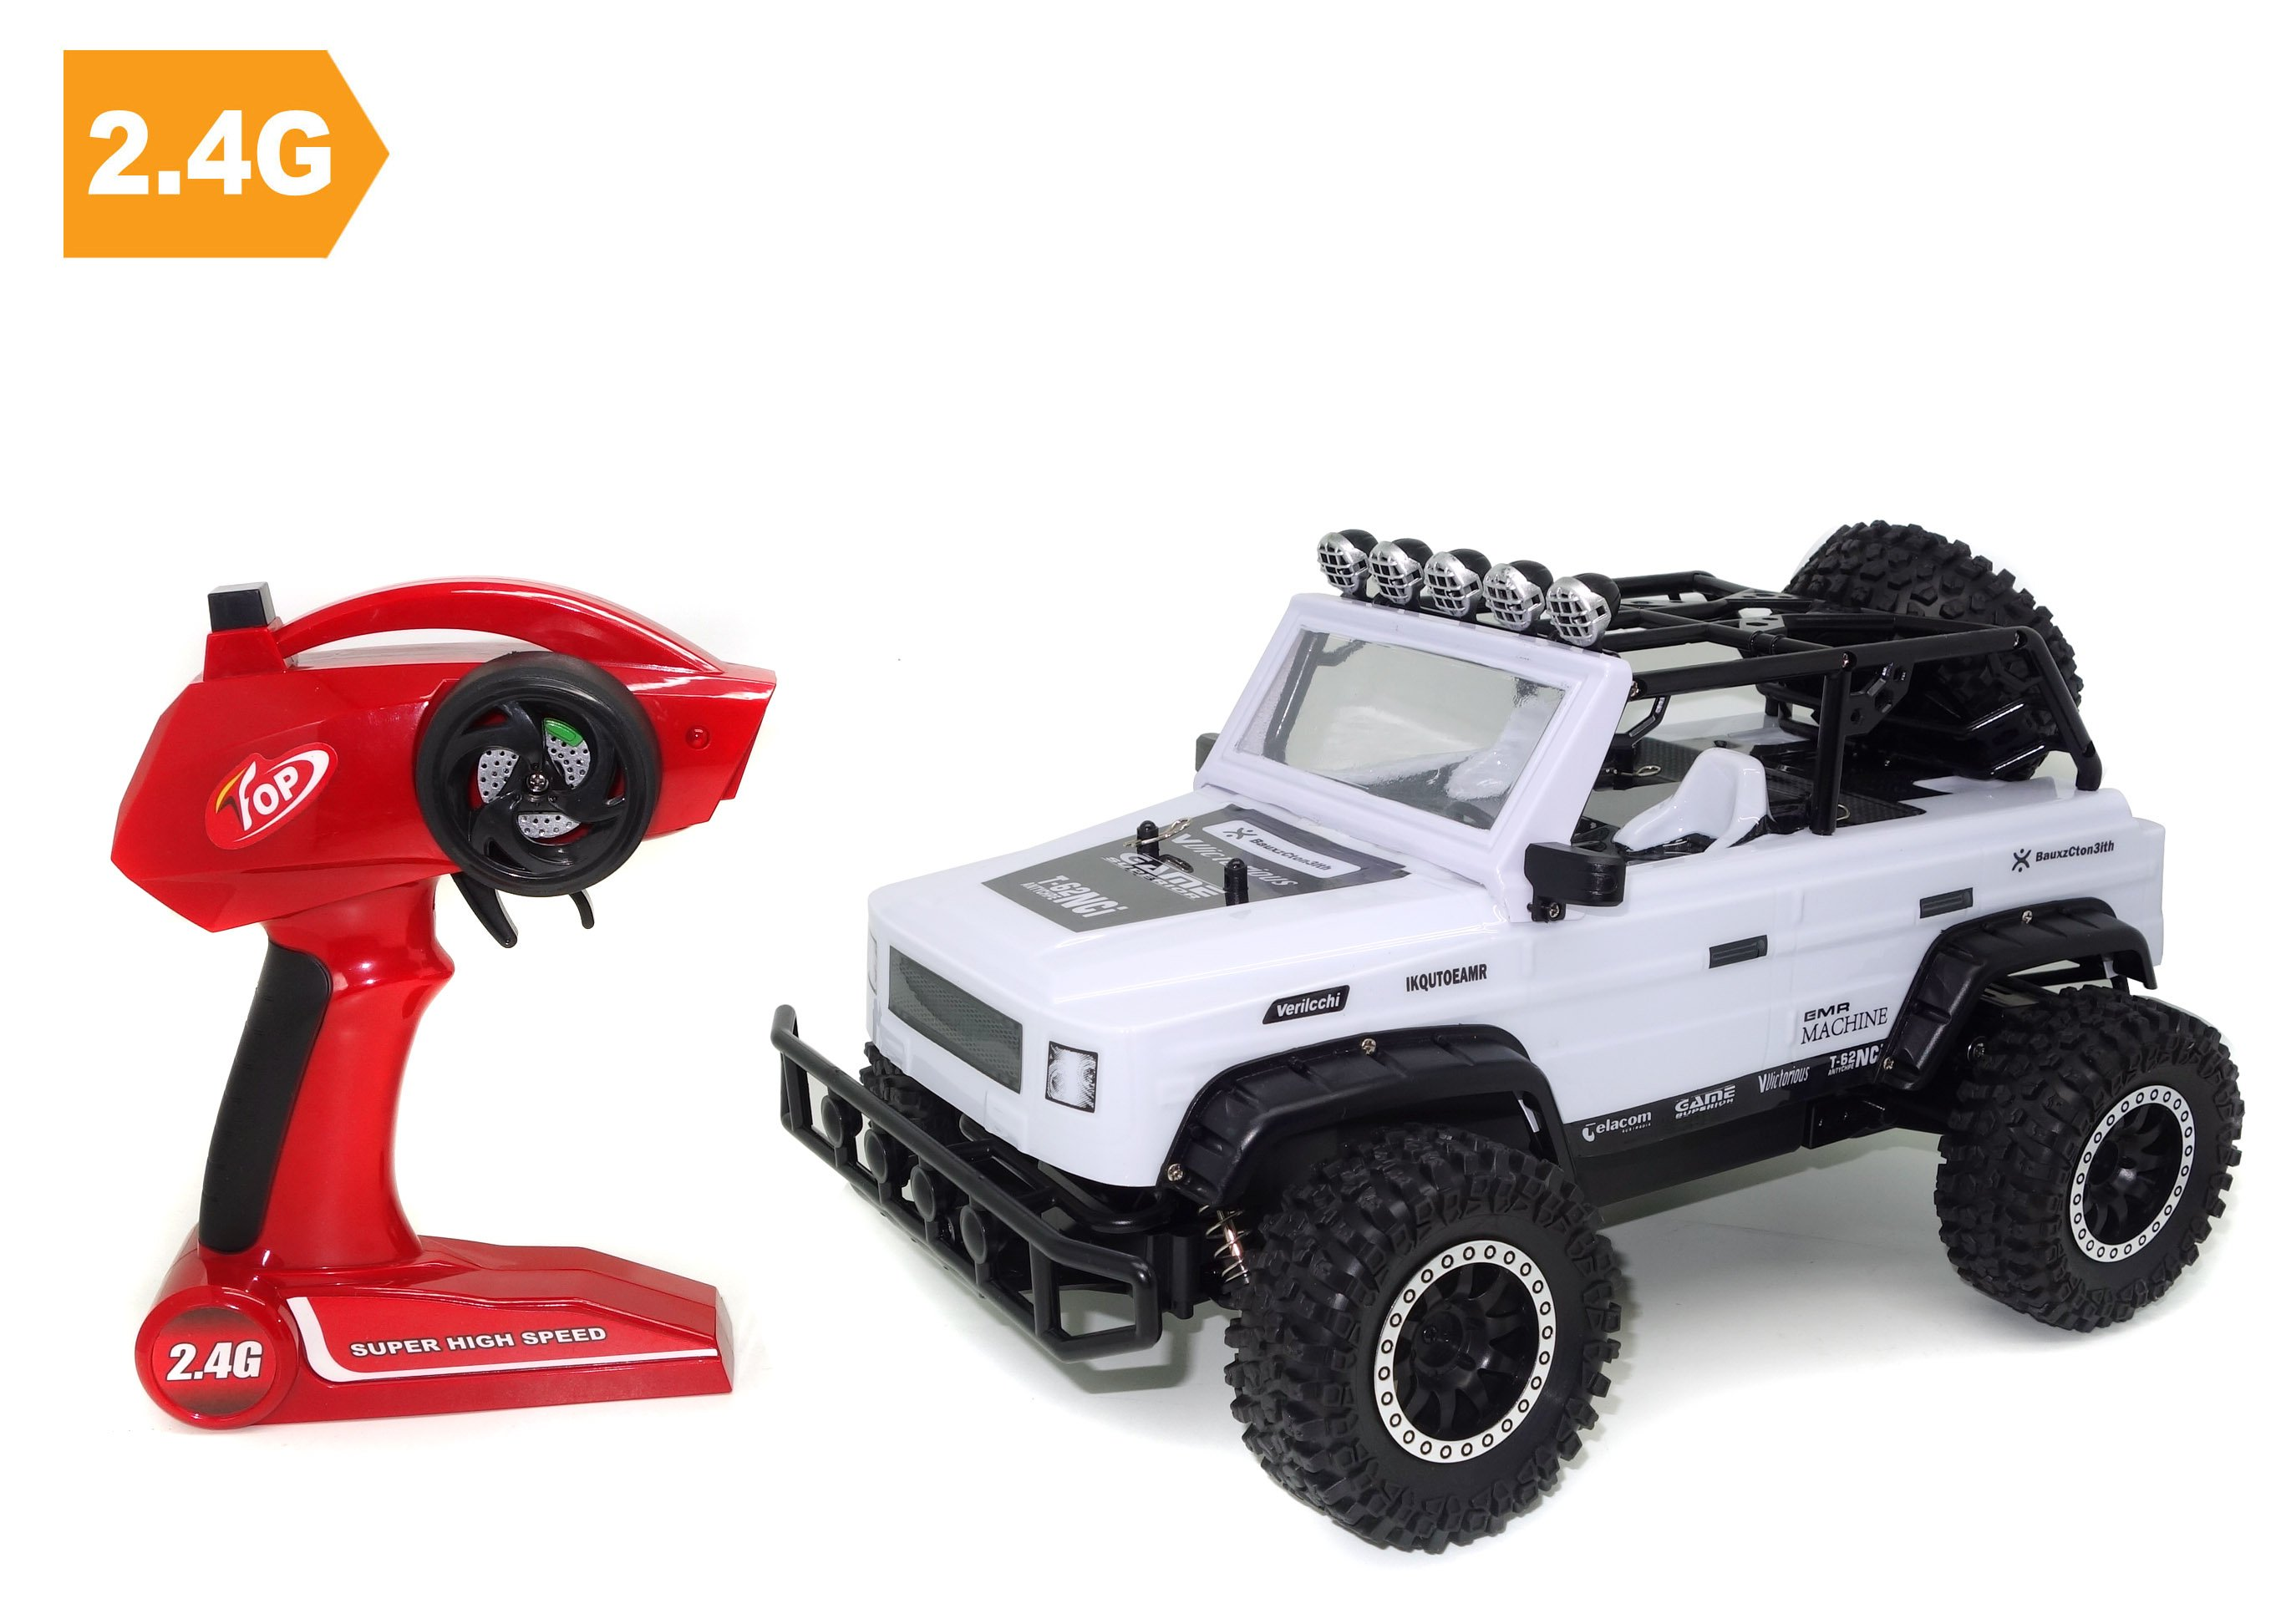 Coche rc suv defenders 1/12 referencia QY1843A QY1843A